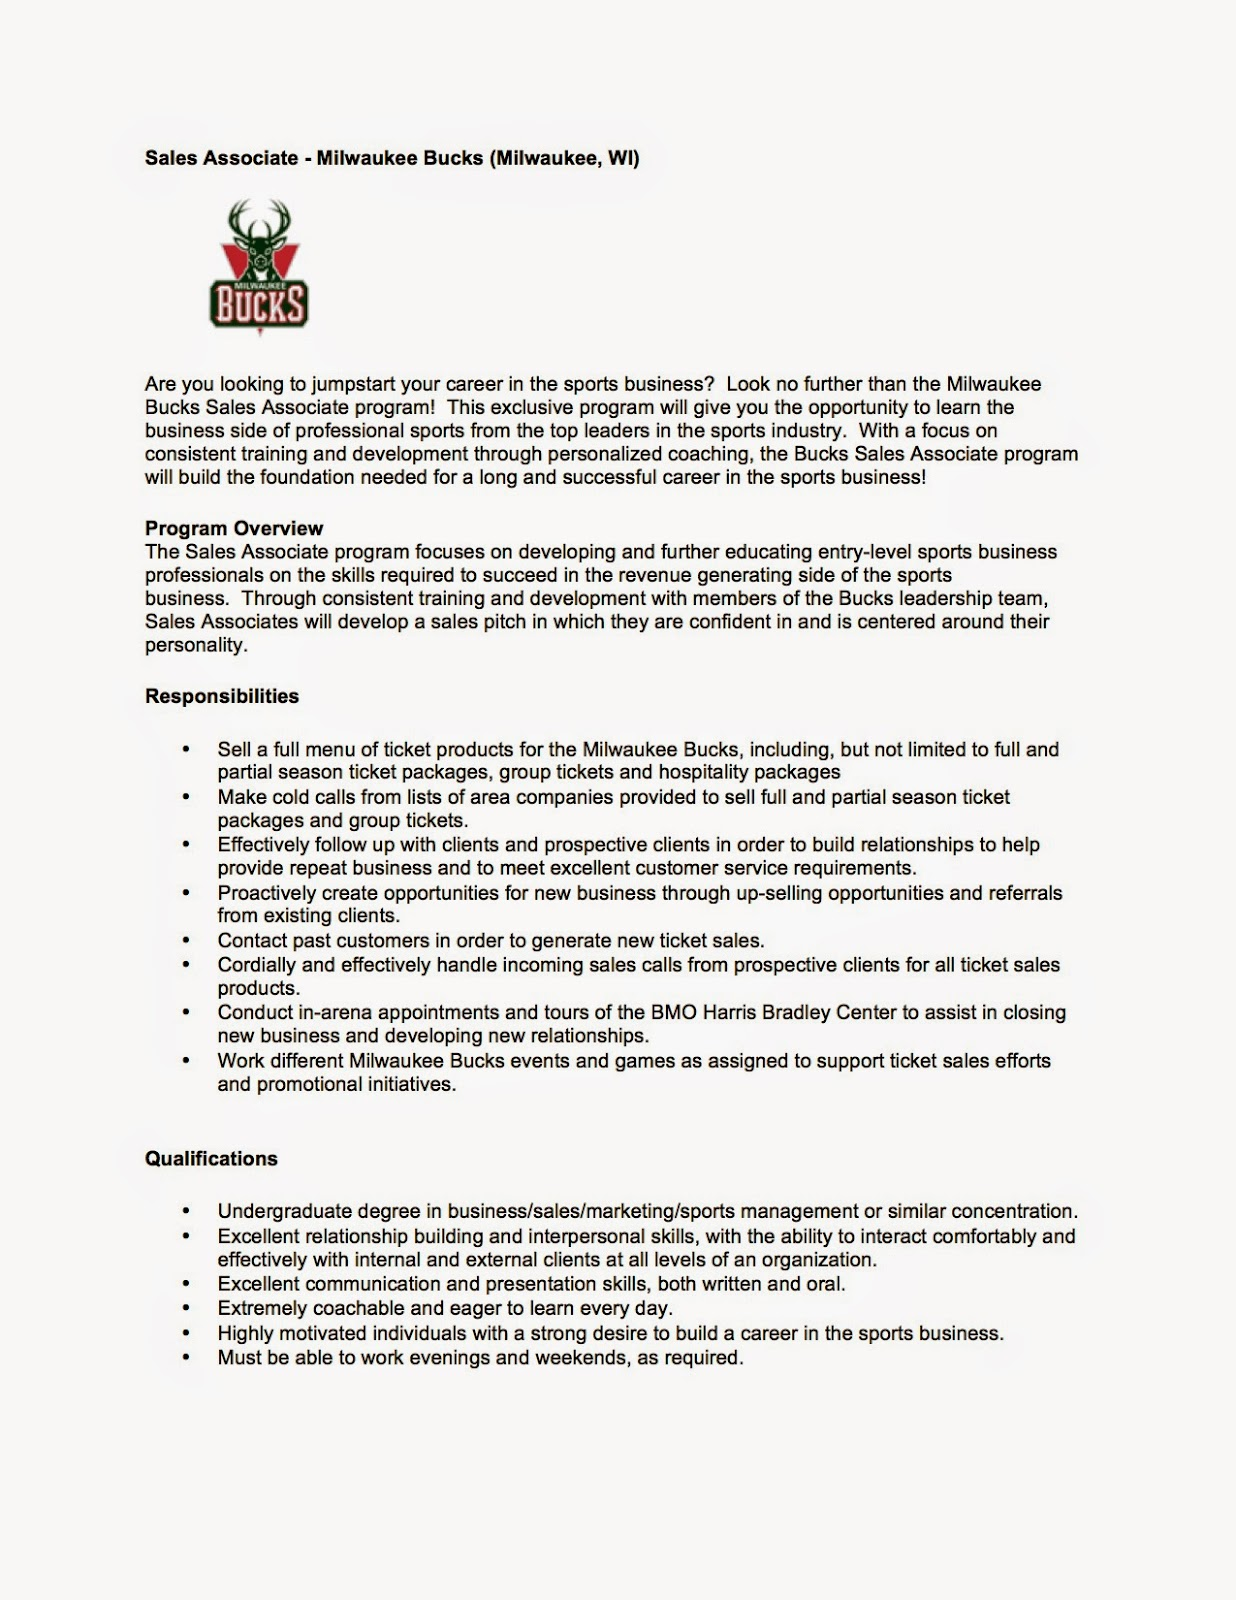 sports business club at uw madison job internship opportunities any interested in this position can apply via teamworkonline or reach out personally to natalie porter former sbc member and current s associate for